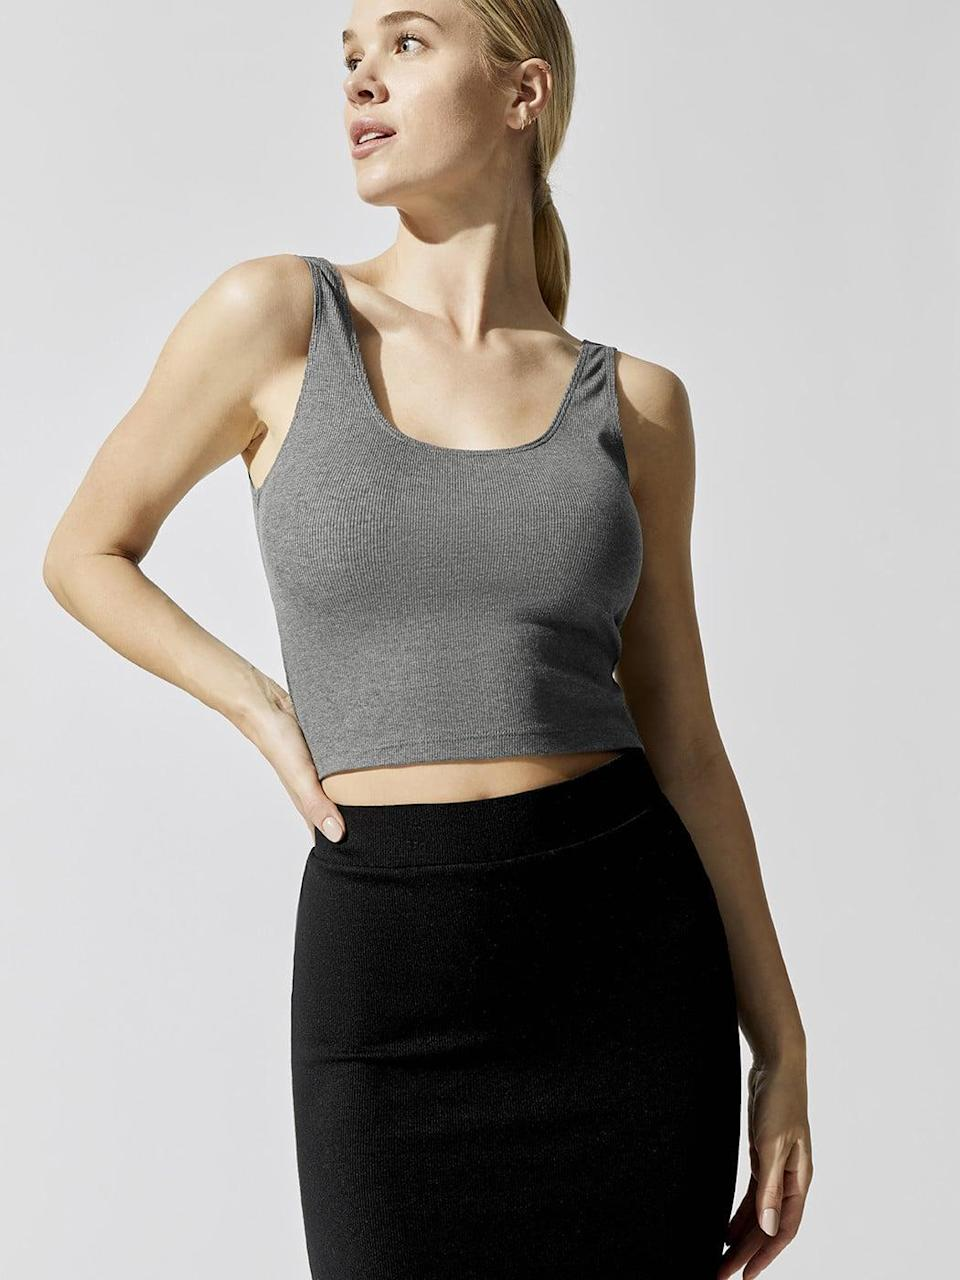 "<p><a href=""https://www.popsugar.com/buy/Carbon-38-Scoop-Back-Ribbed-Tank-Top-578940?p_name=Carbon%2038%20Scoop%20Back%20Ribbed%20Tank%20Top&retailer=carbon38.com&pid=578940&price=48&evar1=fit%3Aus&evar9=47592411&evar98=https%3A%2F%2Fwww.popsugar.com%2Fphoto-gallery%2F47592411%2Fimage%2F47592425%2FCarbon-38-Scoop-Back-Ribbed-Tank-Top&list1=shopping%2Cworkout%20clothes%2Csale%2Cfourth%20of%20july%2Csale%20shopping&prop13=api&pdata=1"" class=""link rapid-noclick-resp"" rel=""nofollow noopener"" target=""_blank"" data-ylk=""slk:Carbon 38 Scoop Back Ribbed Tank Top"">Carbon 38 Scoop Back Ribbed Tank Top</a> ($48, originally $68)</p>"